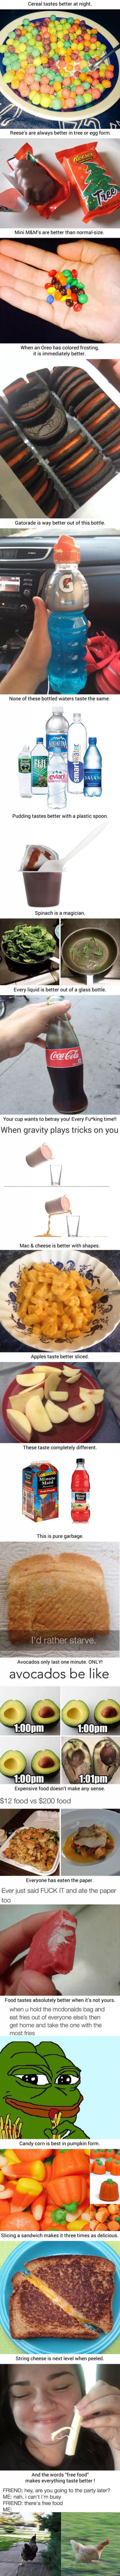 23 Food Facts That Are Undeniably True And You Know It